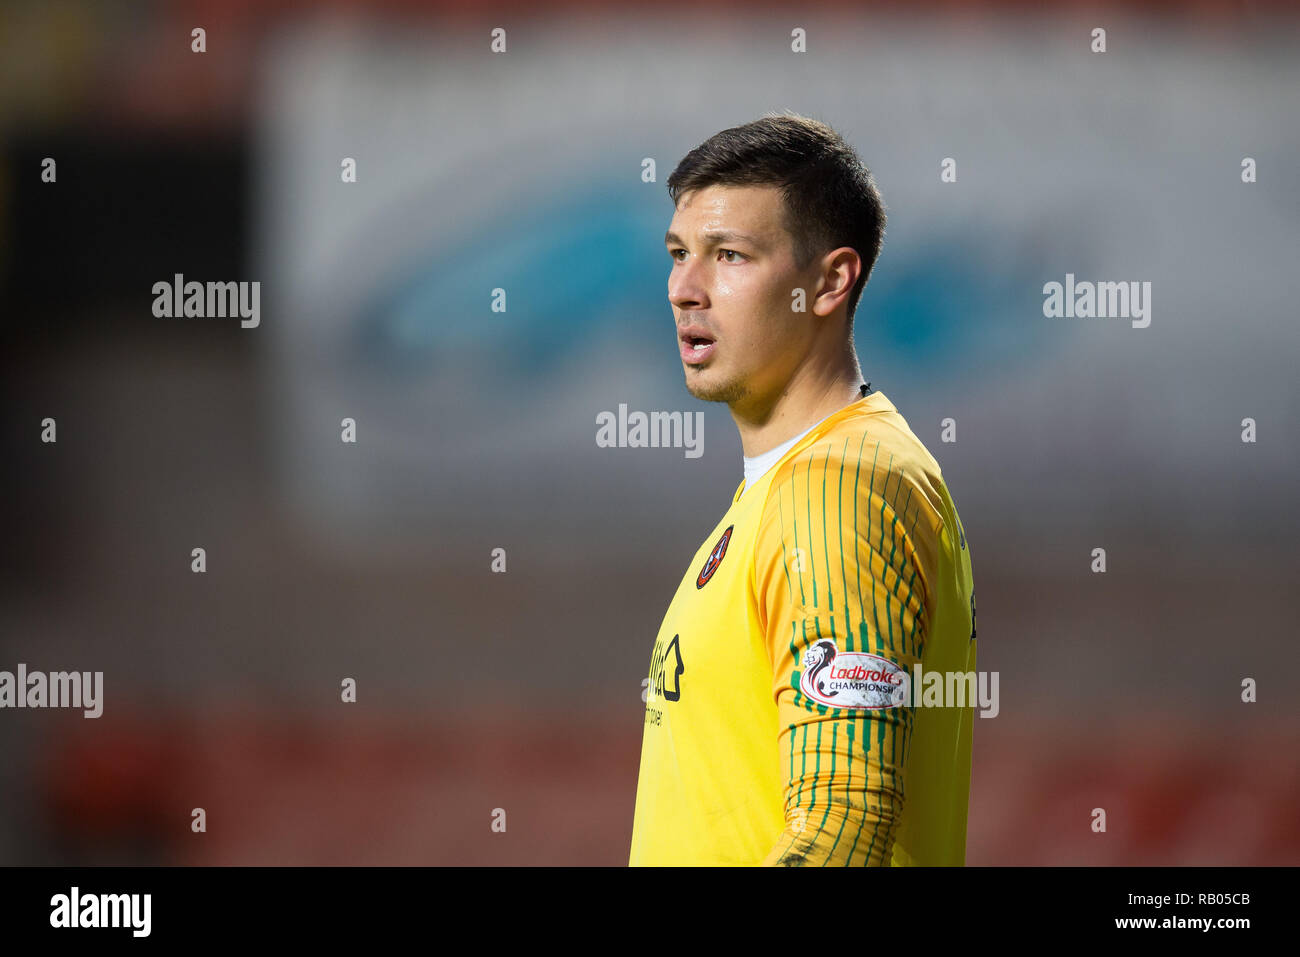 Tannadice Park, Dundee, UK. 5th Jan, 2019. Scottish Championship football, Dundee United versus Partick Thistle; Benjamin Siegrist of Dundee United Credit: Action Plus Sports/Alamy Live News - Stock Image